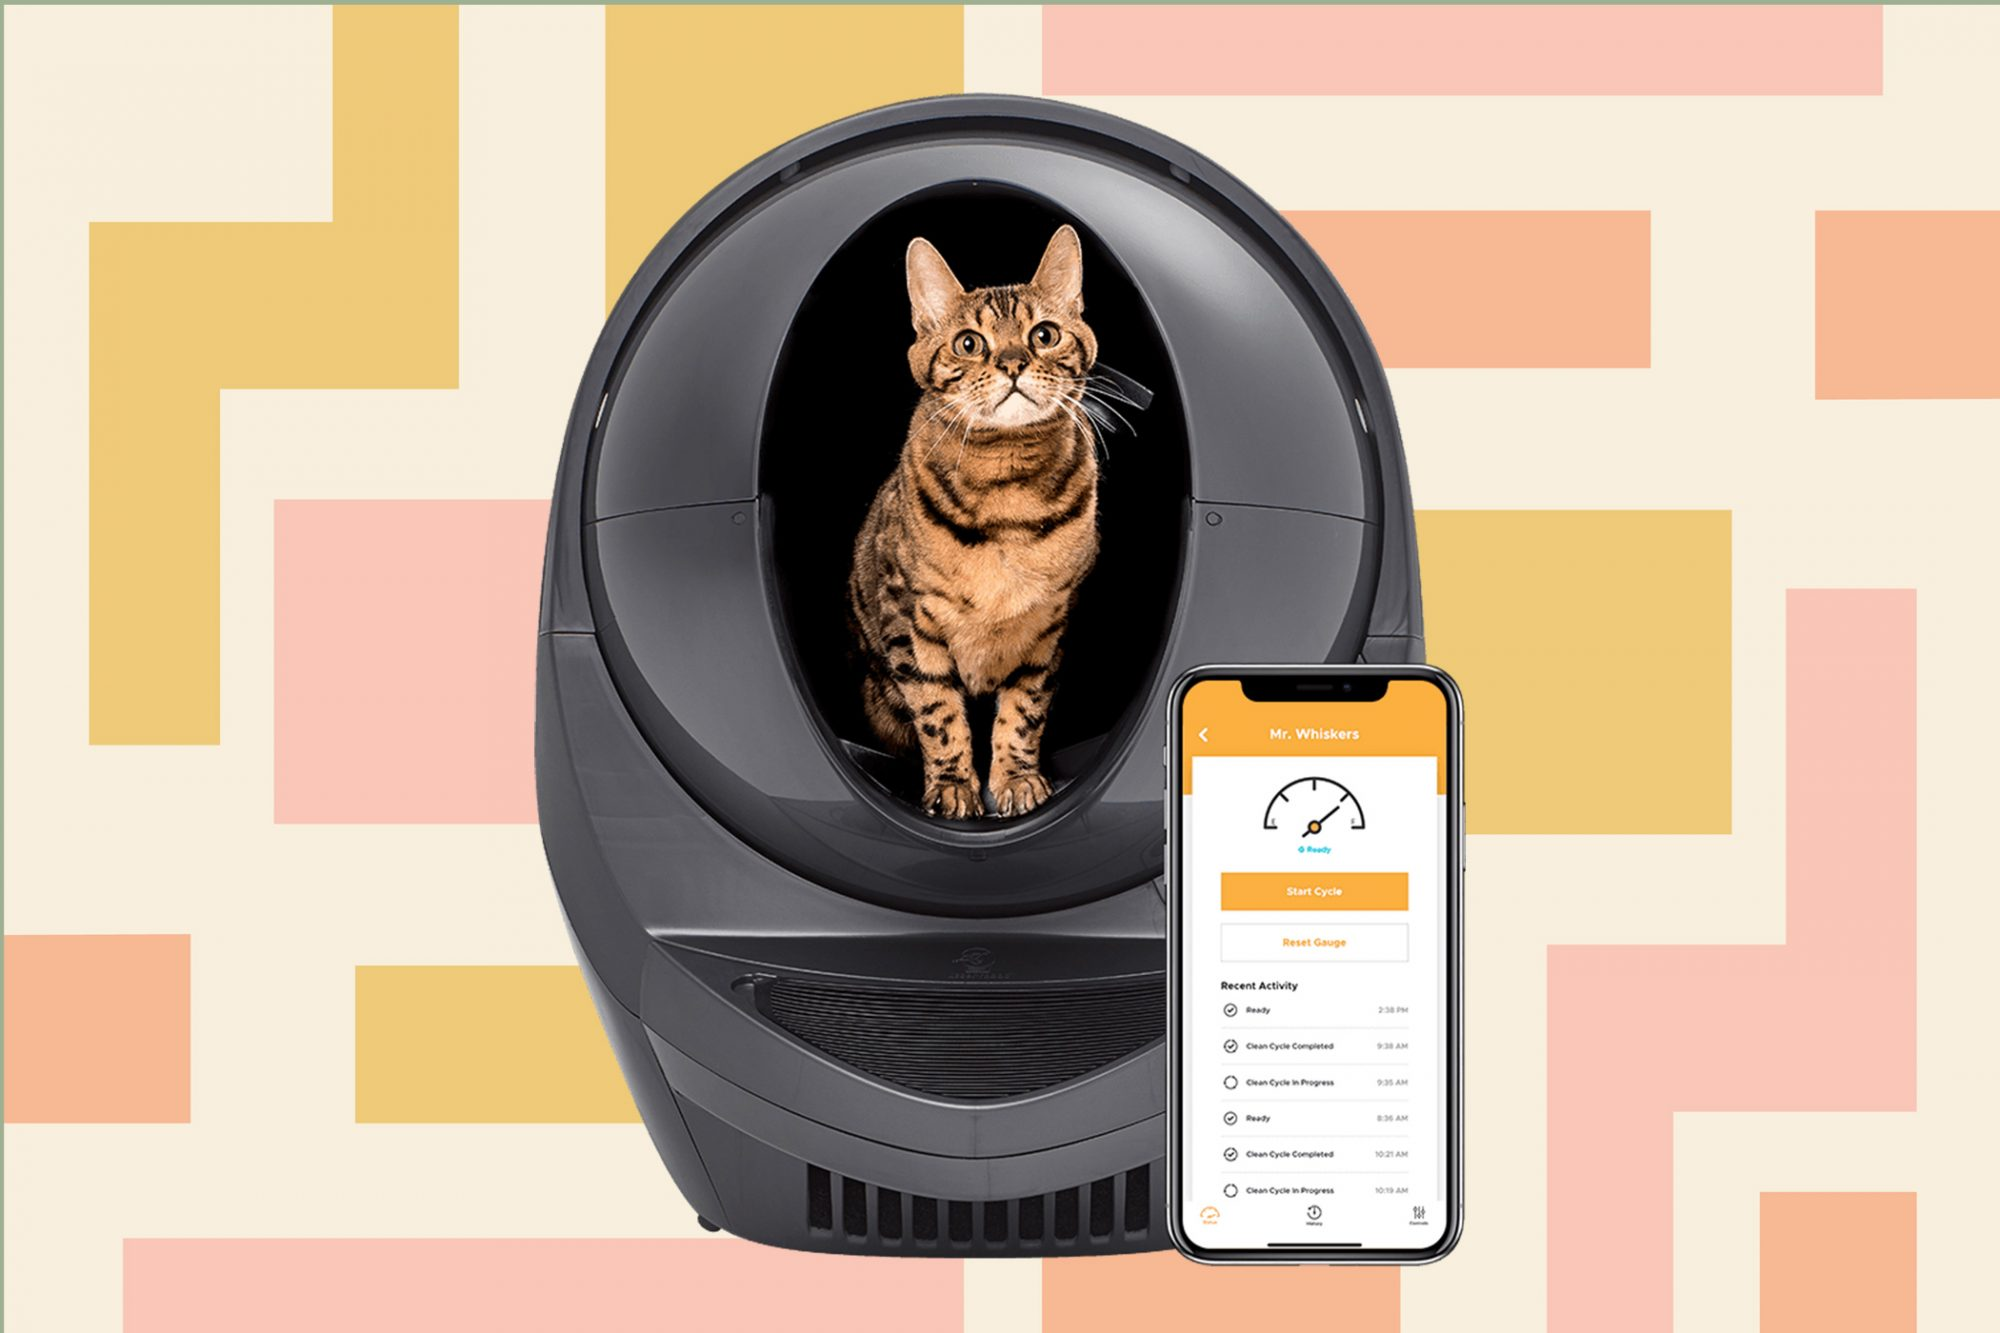 Striped cat sits inside an automatic litterbox that can be paired with smartphone